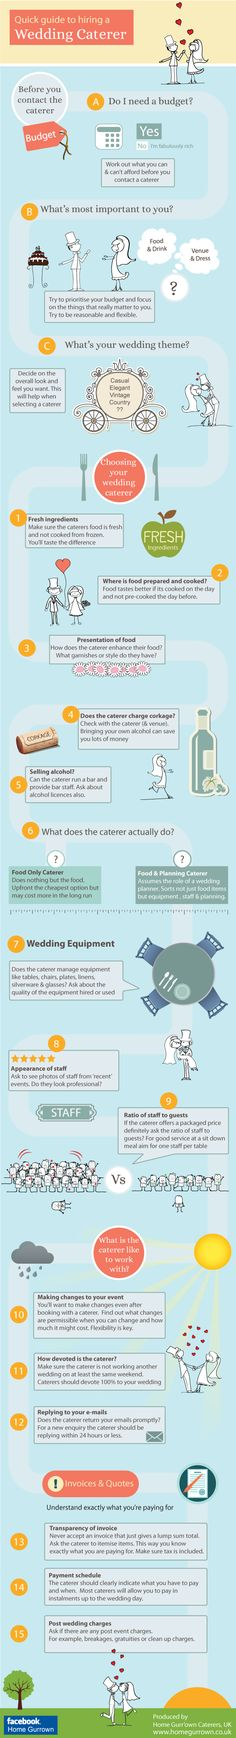 An infographic to help wedding couples navigate the often difficult task of choosing a wedding caterer. It lists things to look out for from setting y